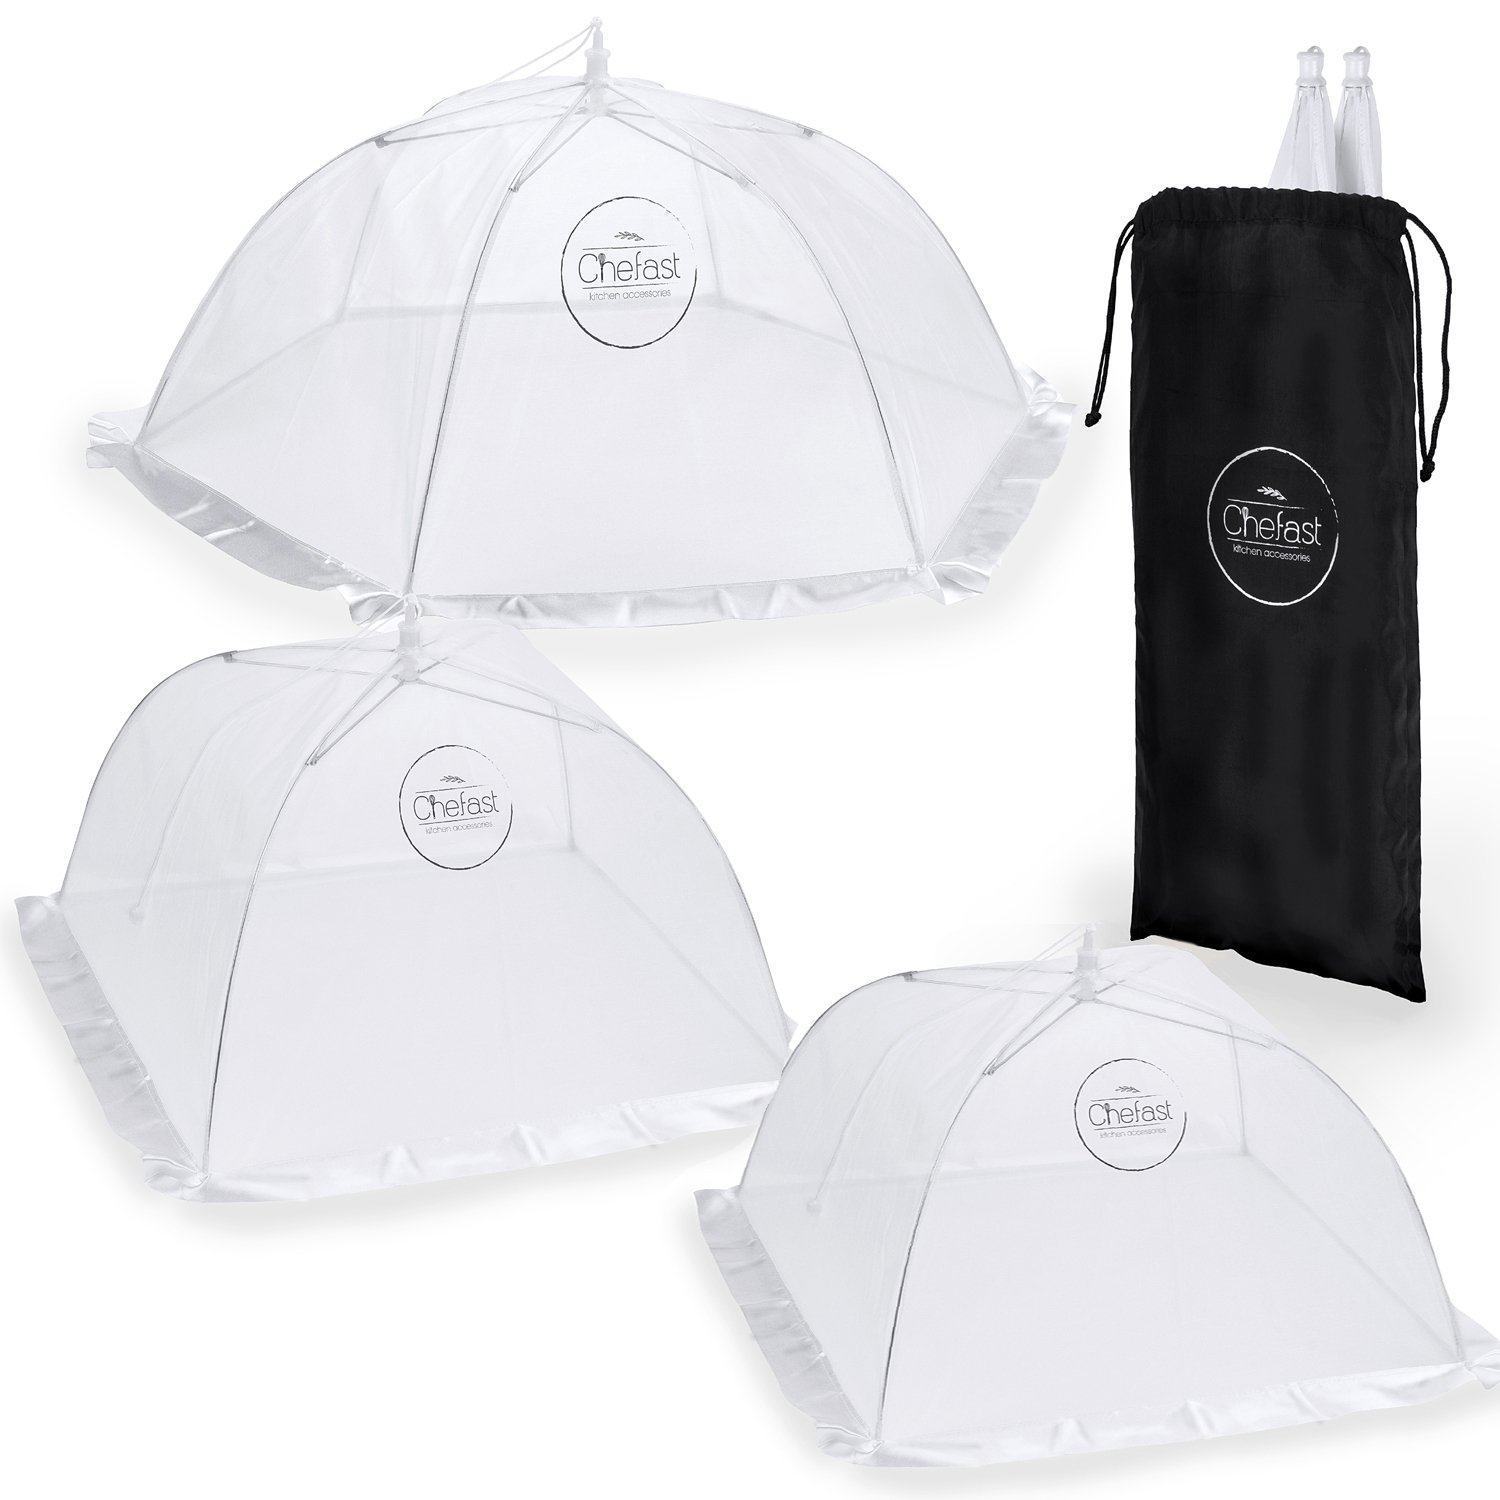 Chefast Food Cover Tents (5 Pack) - Combo Set of Pop Up Mesh Covers in 4 Sizes and a Reusable Carry Bag - Umbrella Screens to Protect Your Food and Fruit from Flies and Bugs at Picnics, BBQ and More